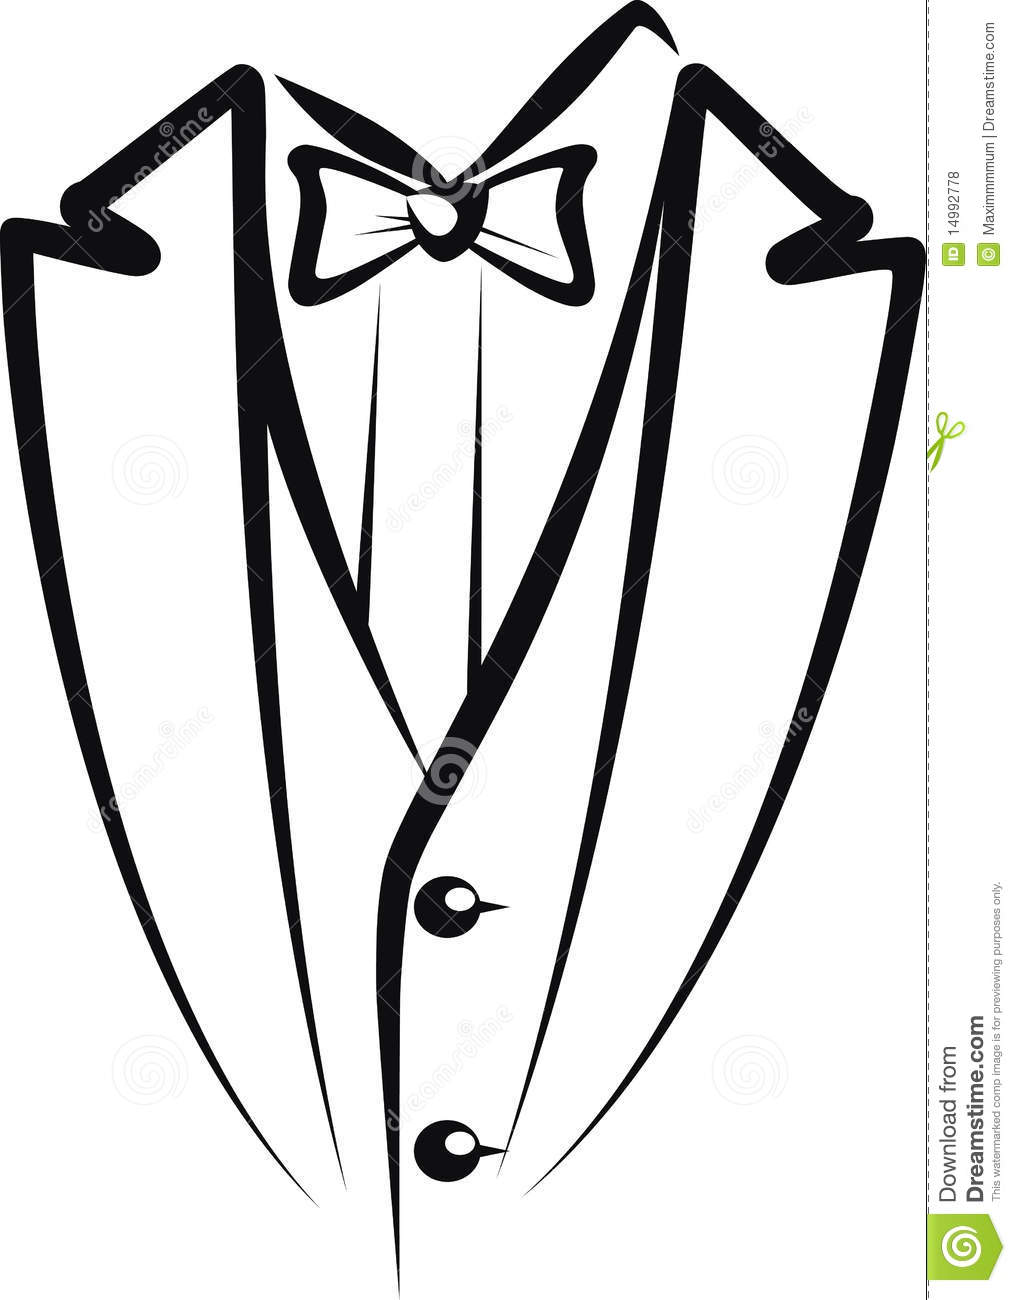 Gentlemen In Tuxedos Clipart - Clipart Kid